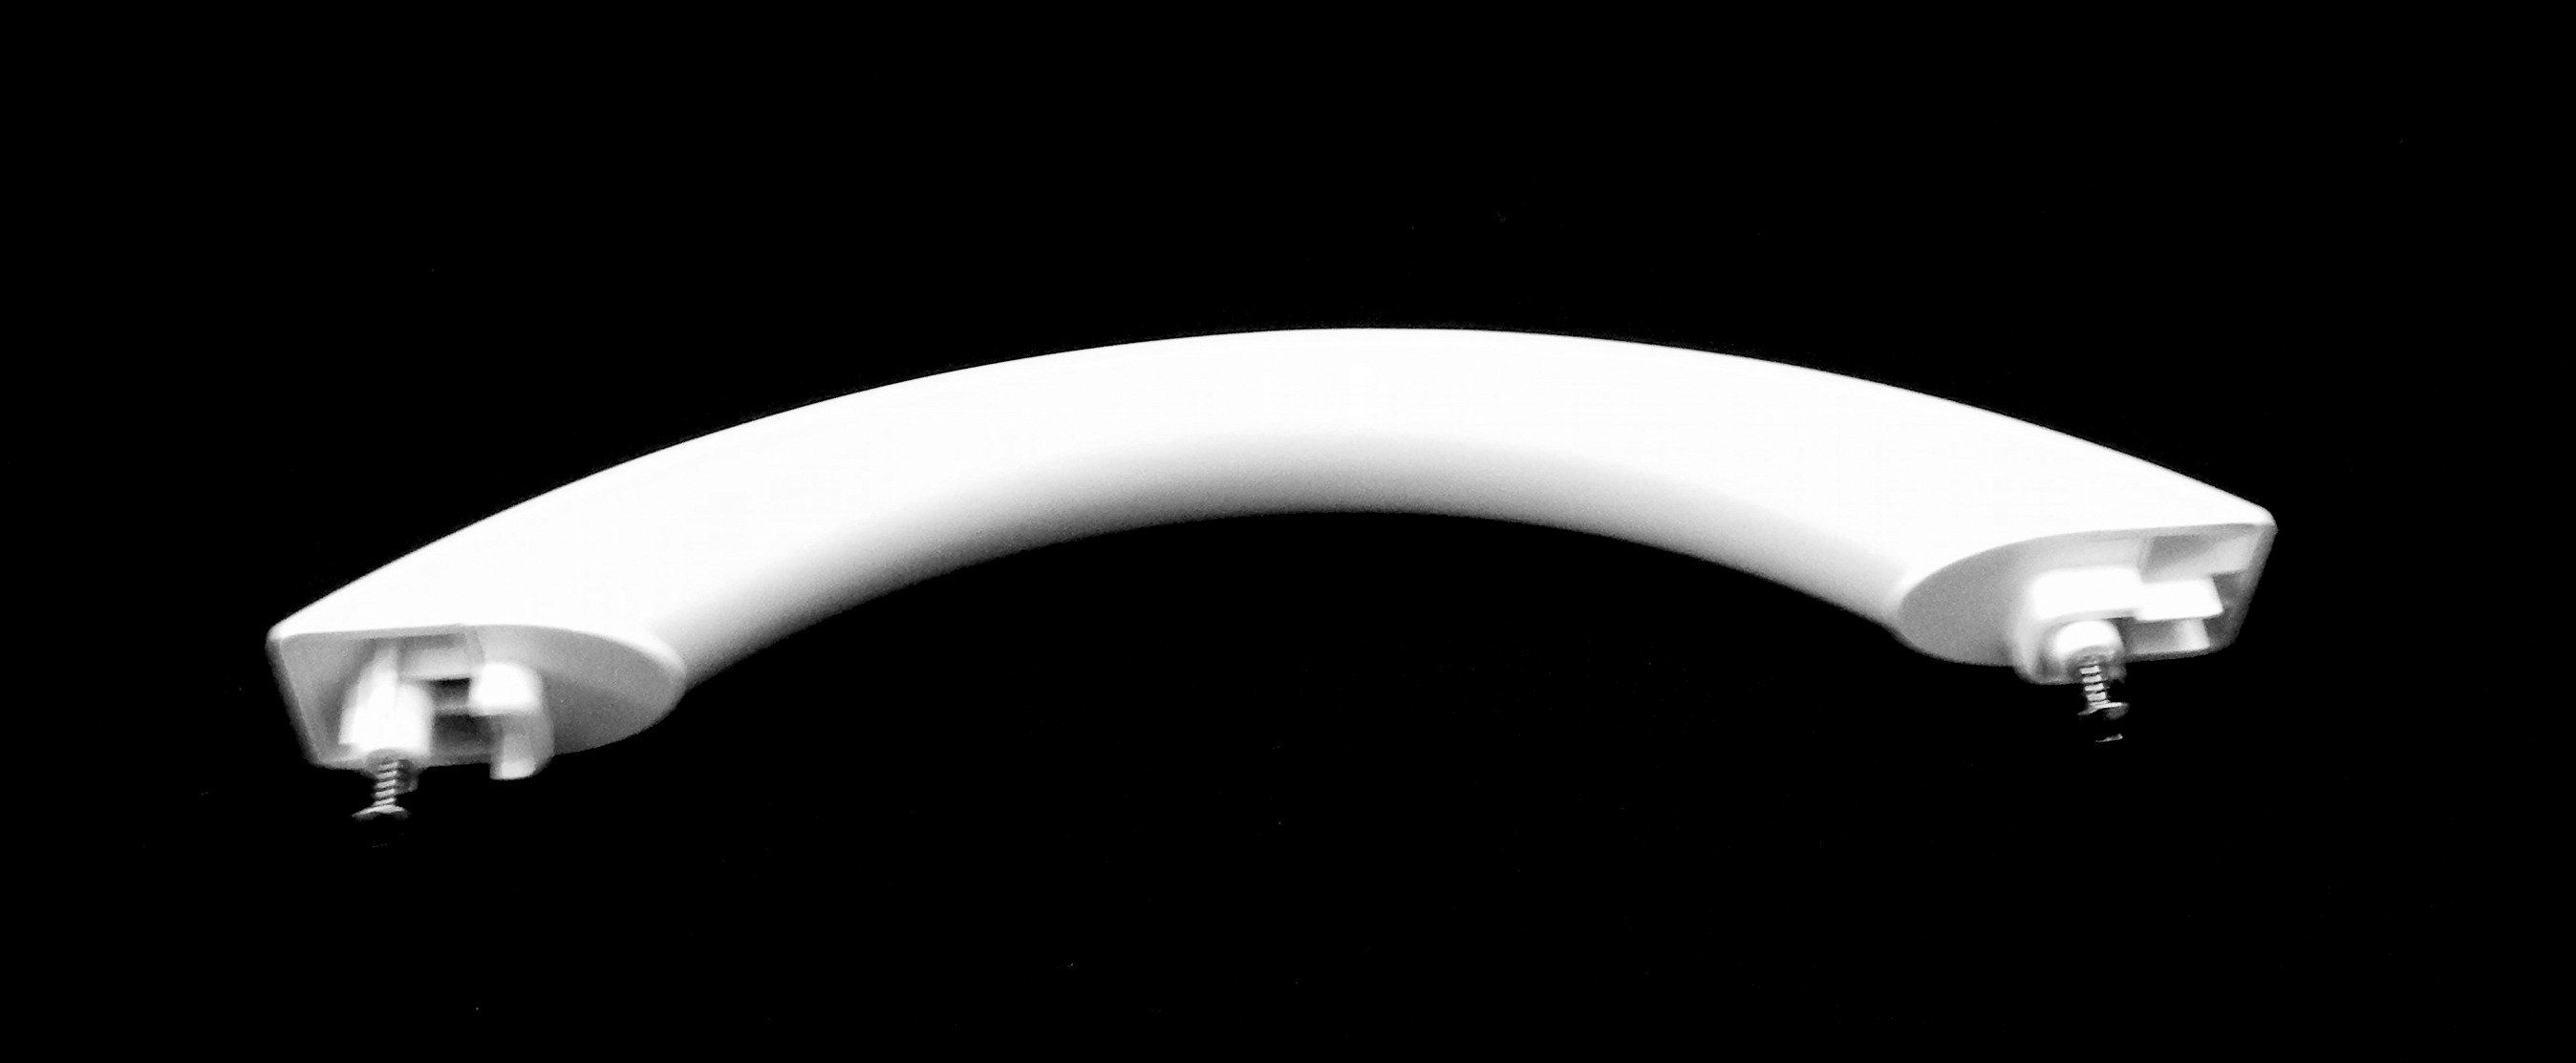 53001790 maytag microwave white door handle only in 2021 door handles maytag microwave white doors